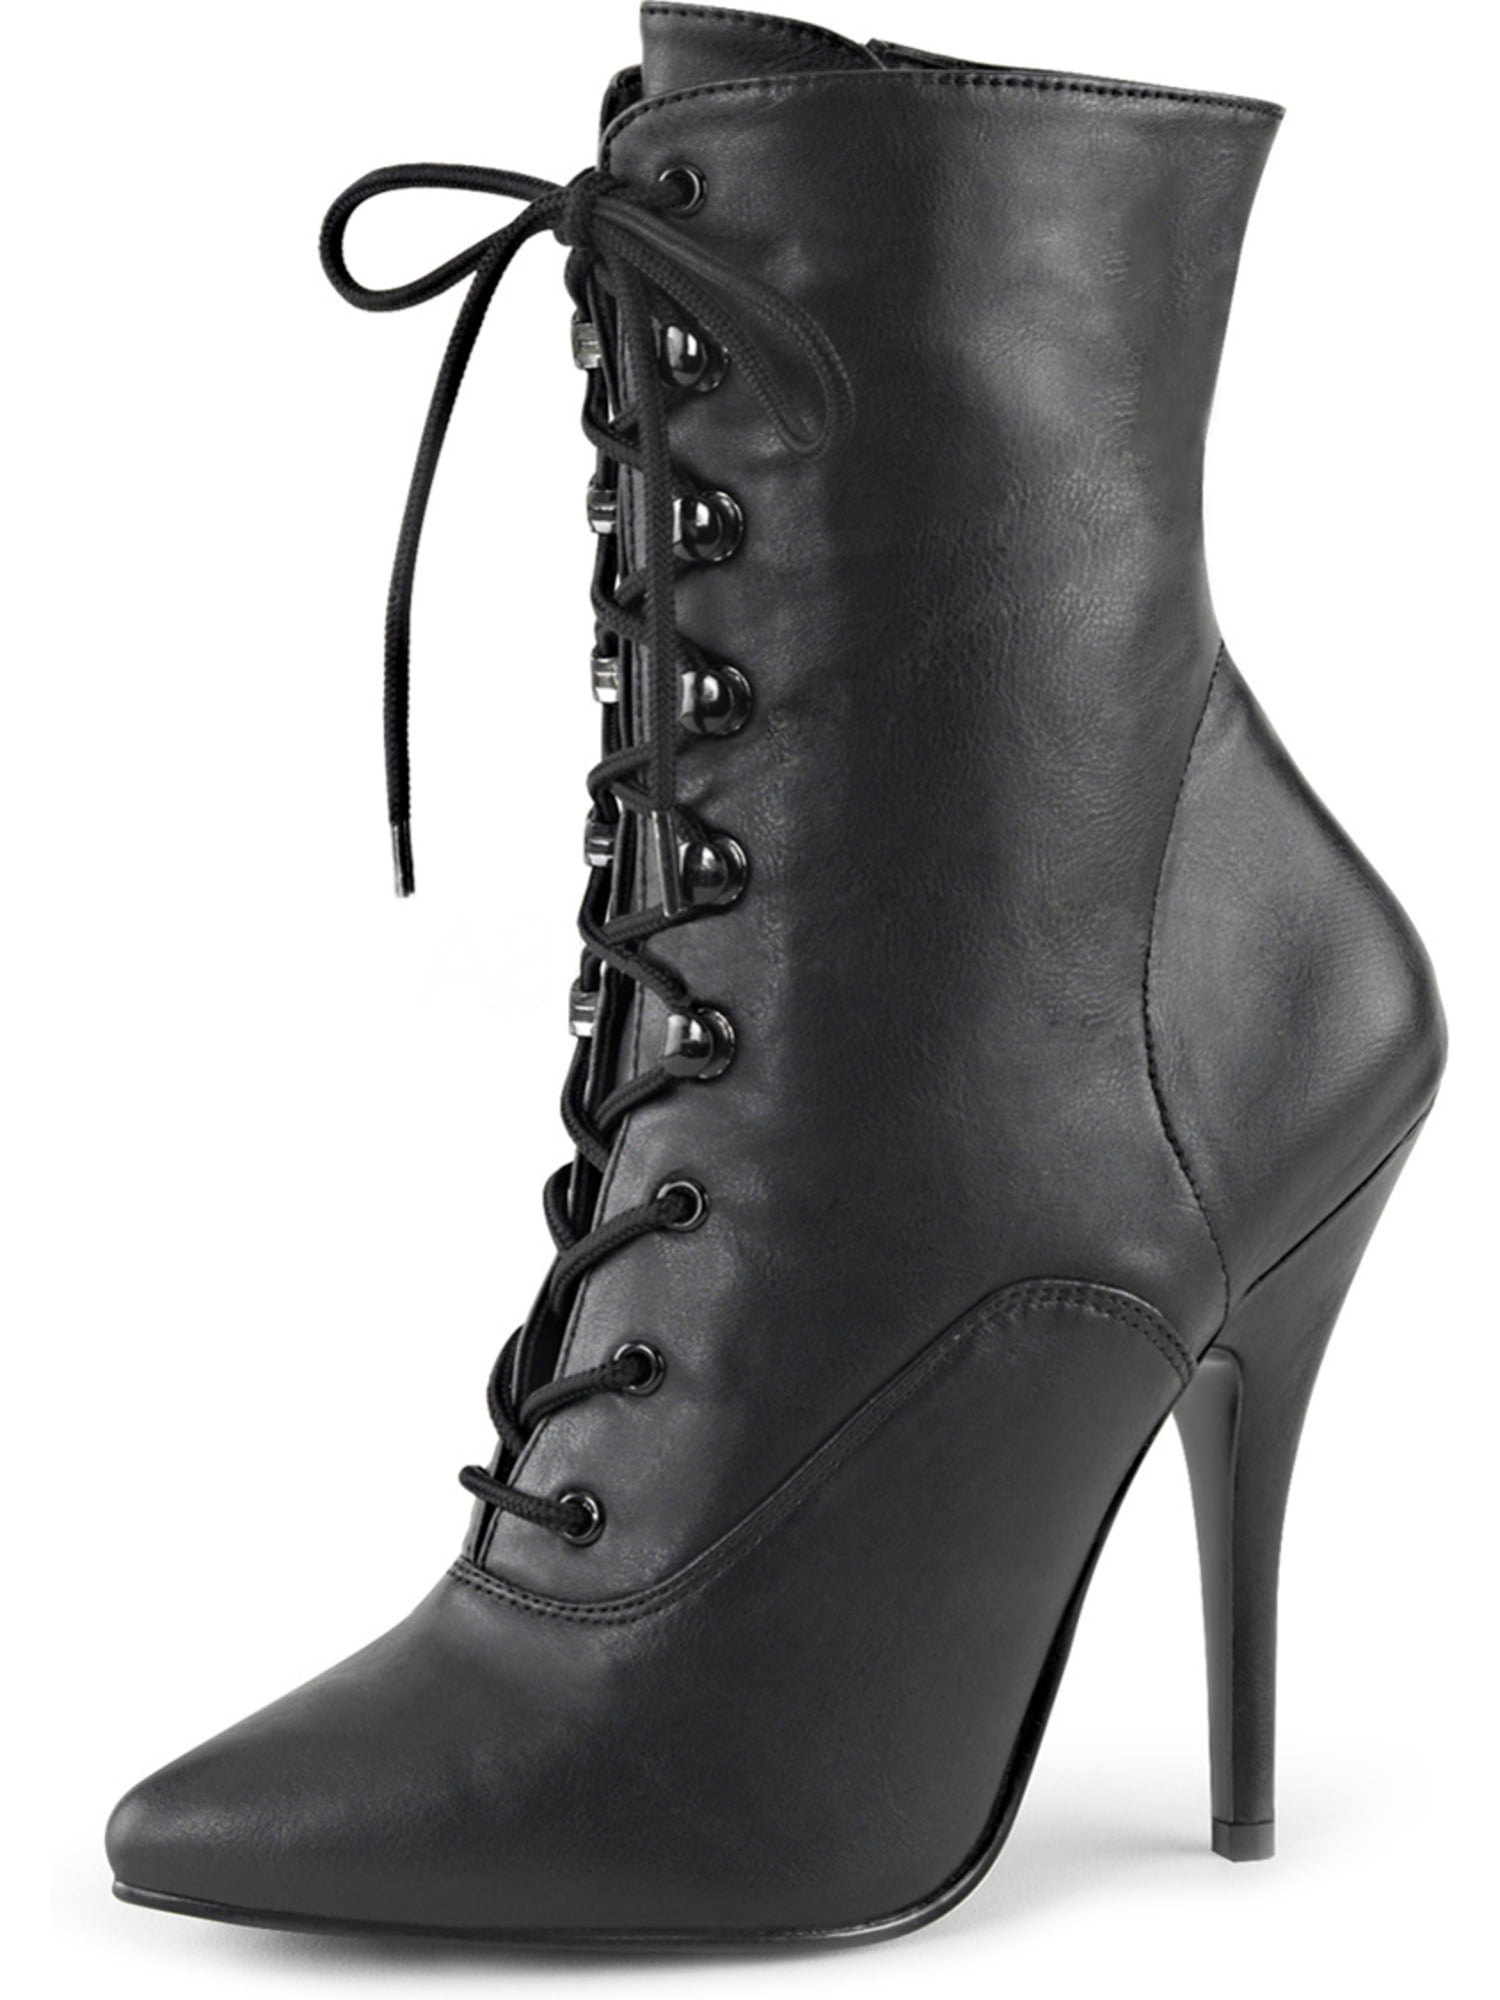 Womens Lace Up Bootie Black Ankle Boots Pointed Toe Side Zipper 5 Inch Heels